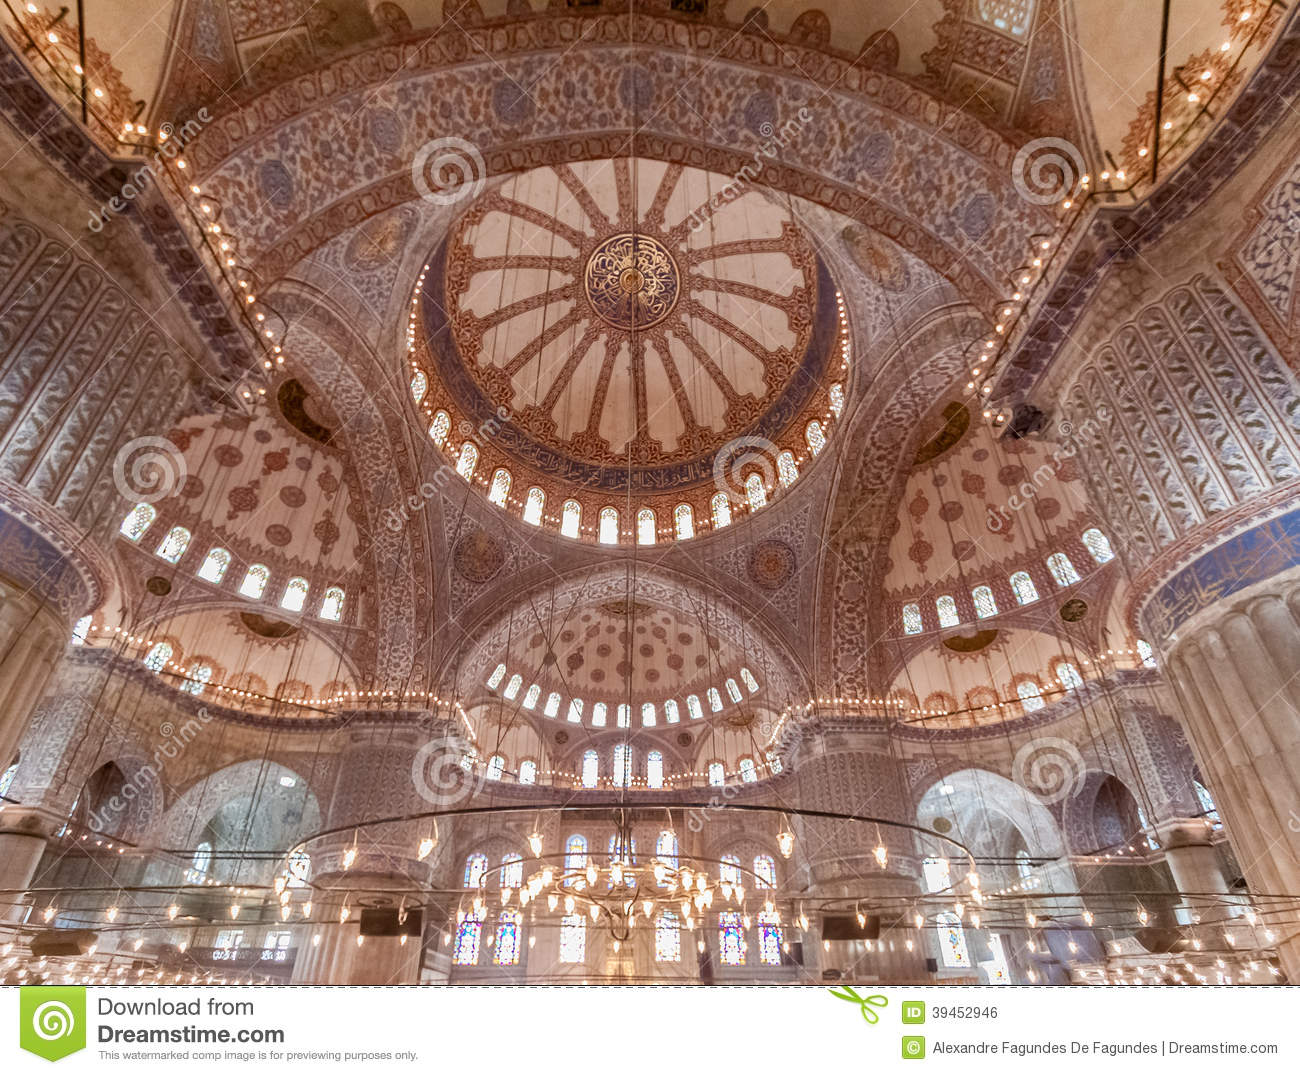 Download Blue Mosque Ceiling Istanbul Stock Photo - Image of mosque, muslim: 39452946